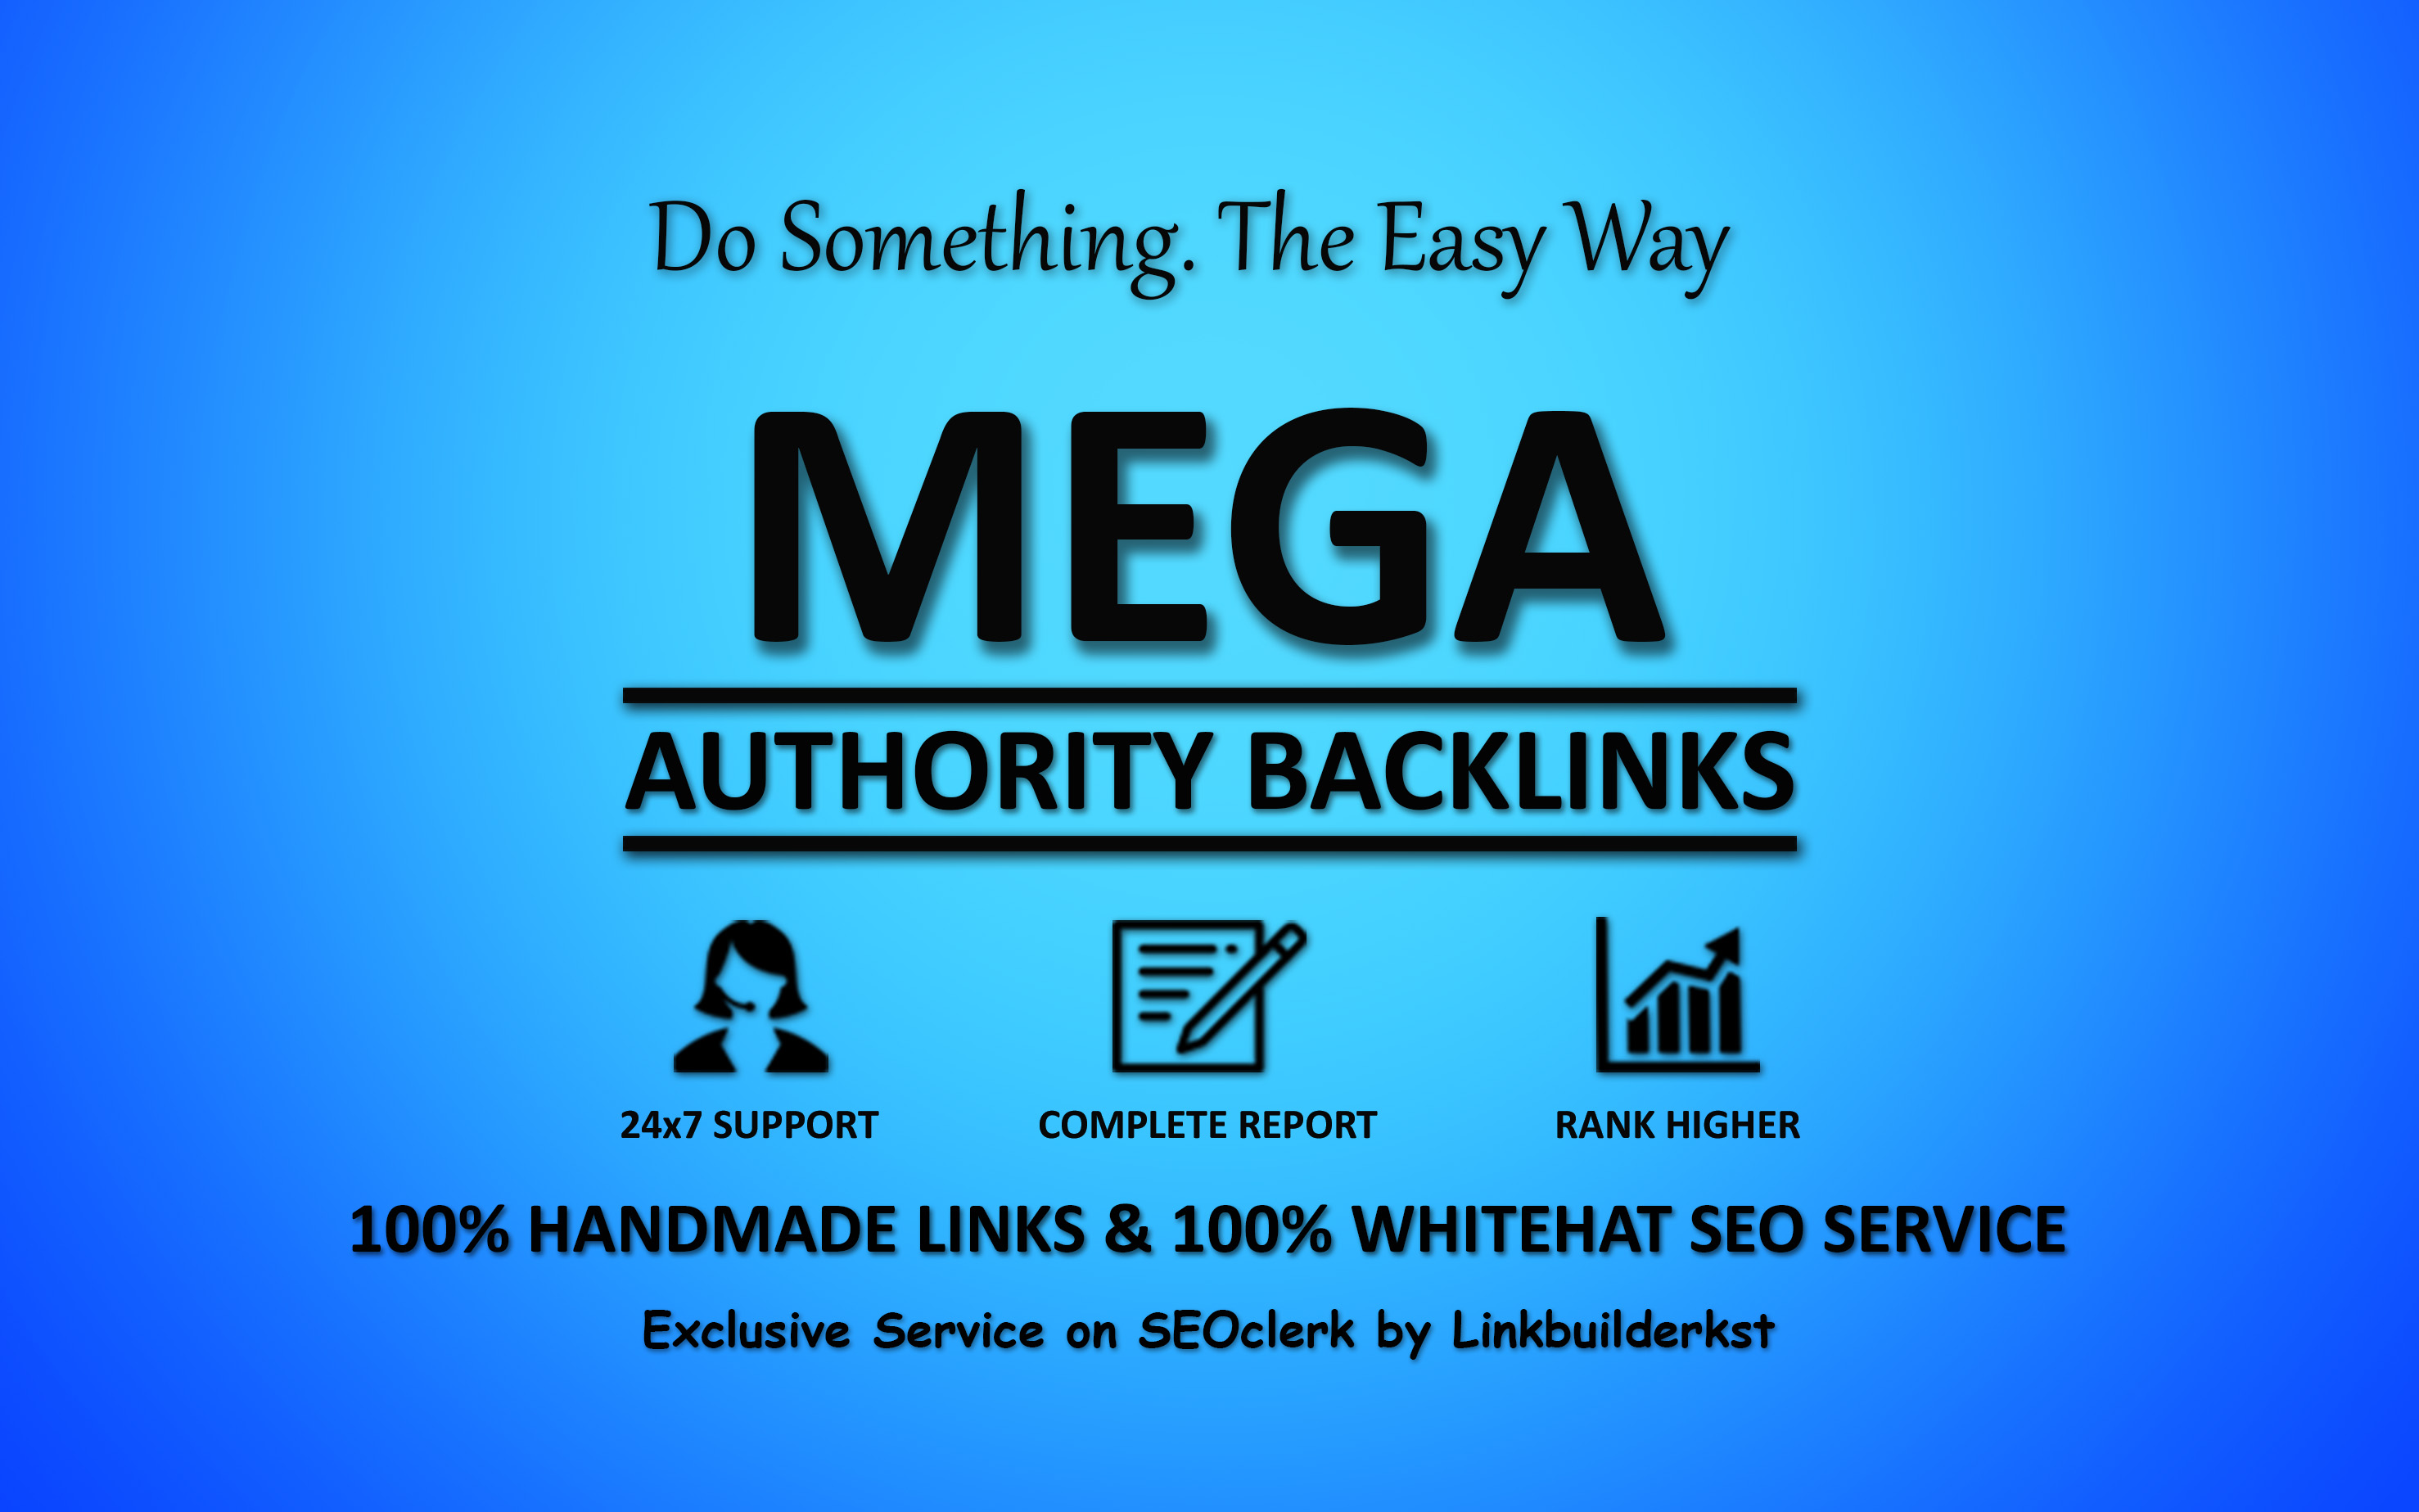 Mega Authority Backlinks - Skyrocket Your Google Ranking With Our Whitehat Link Building Service